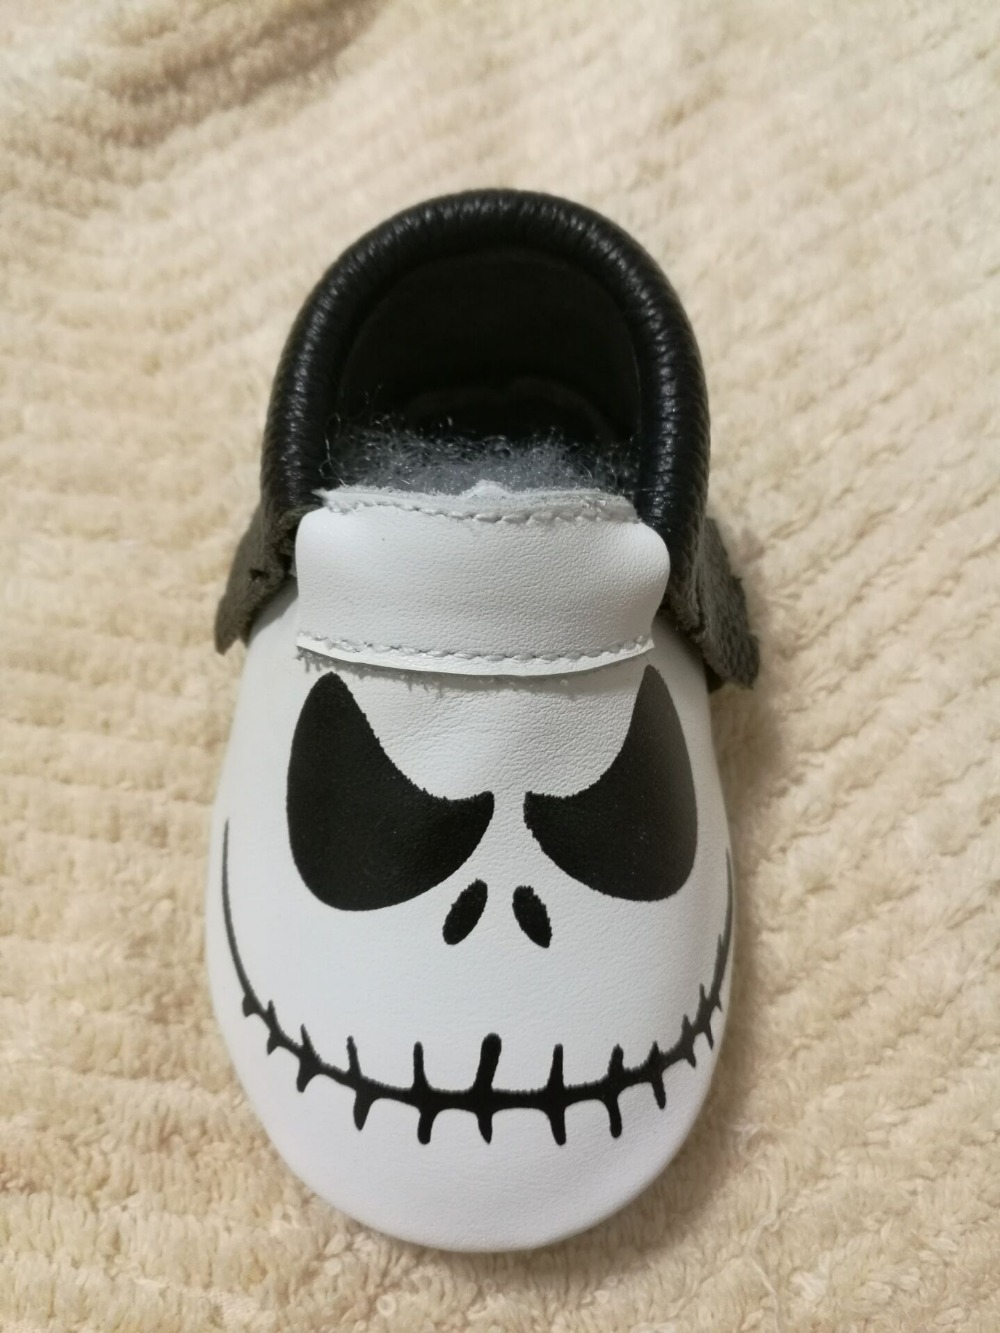 New-Stylish-Genuine-Leather-Baby-Moccasins-Shoes-Halloween-presents-for-bebe-Baby-Shoes-Newborn-first-walker (2)